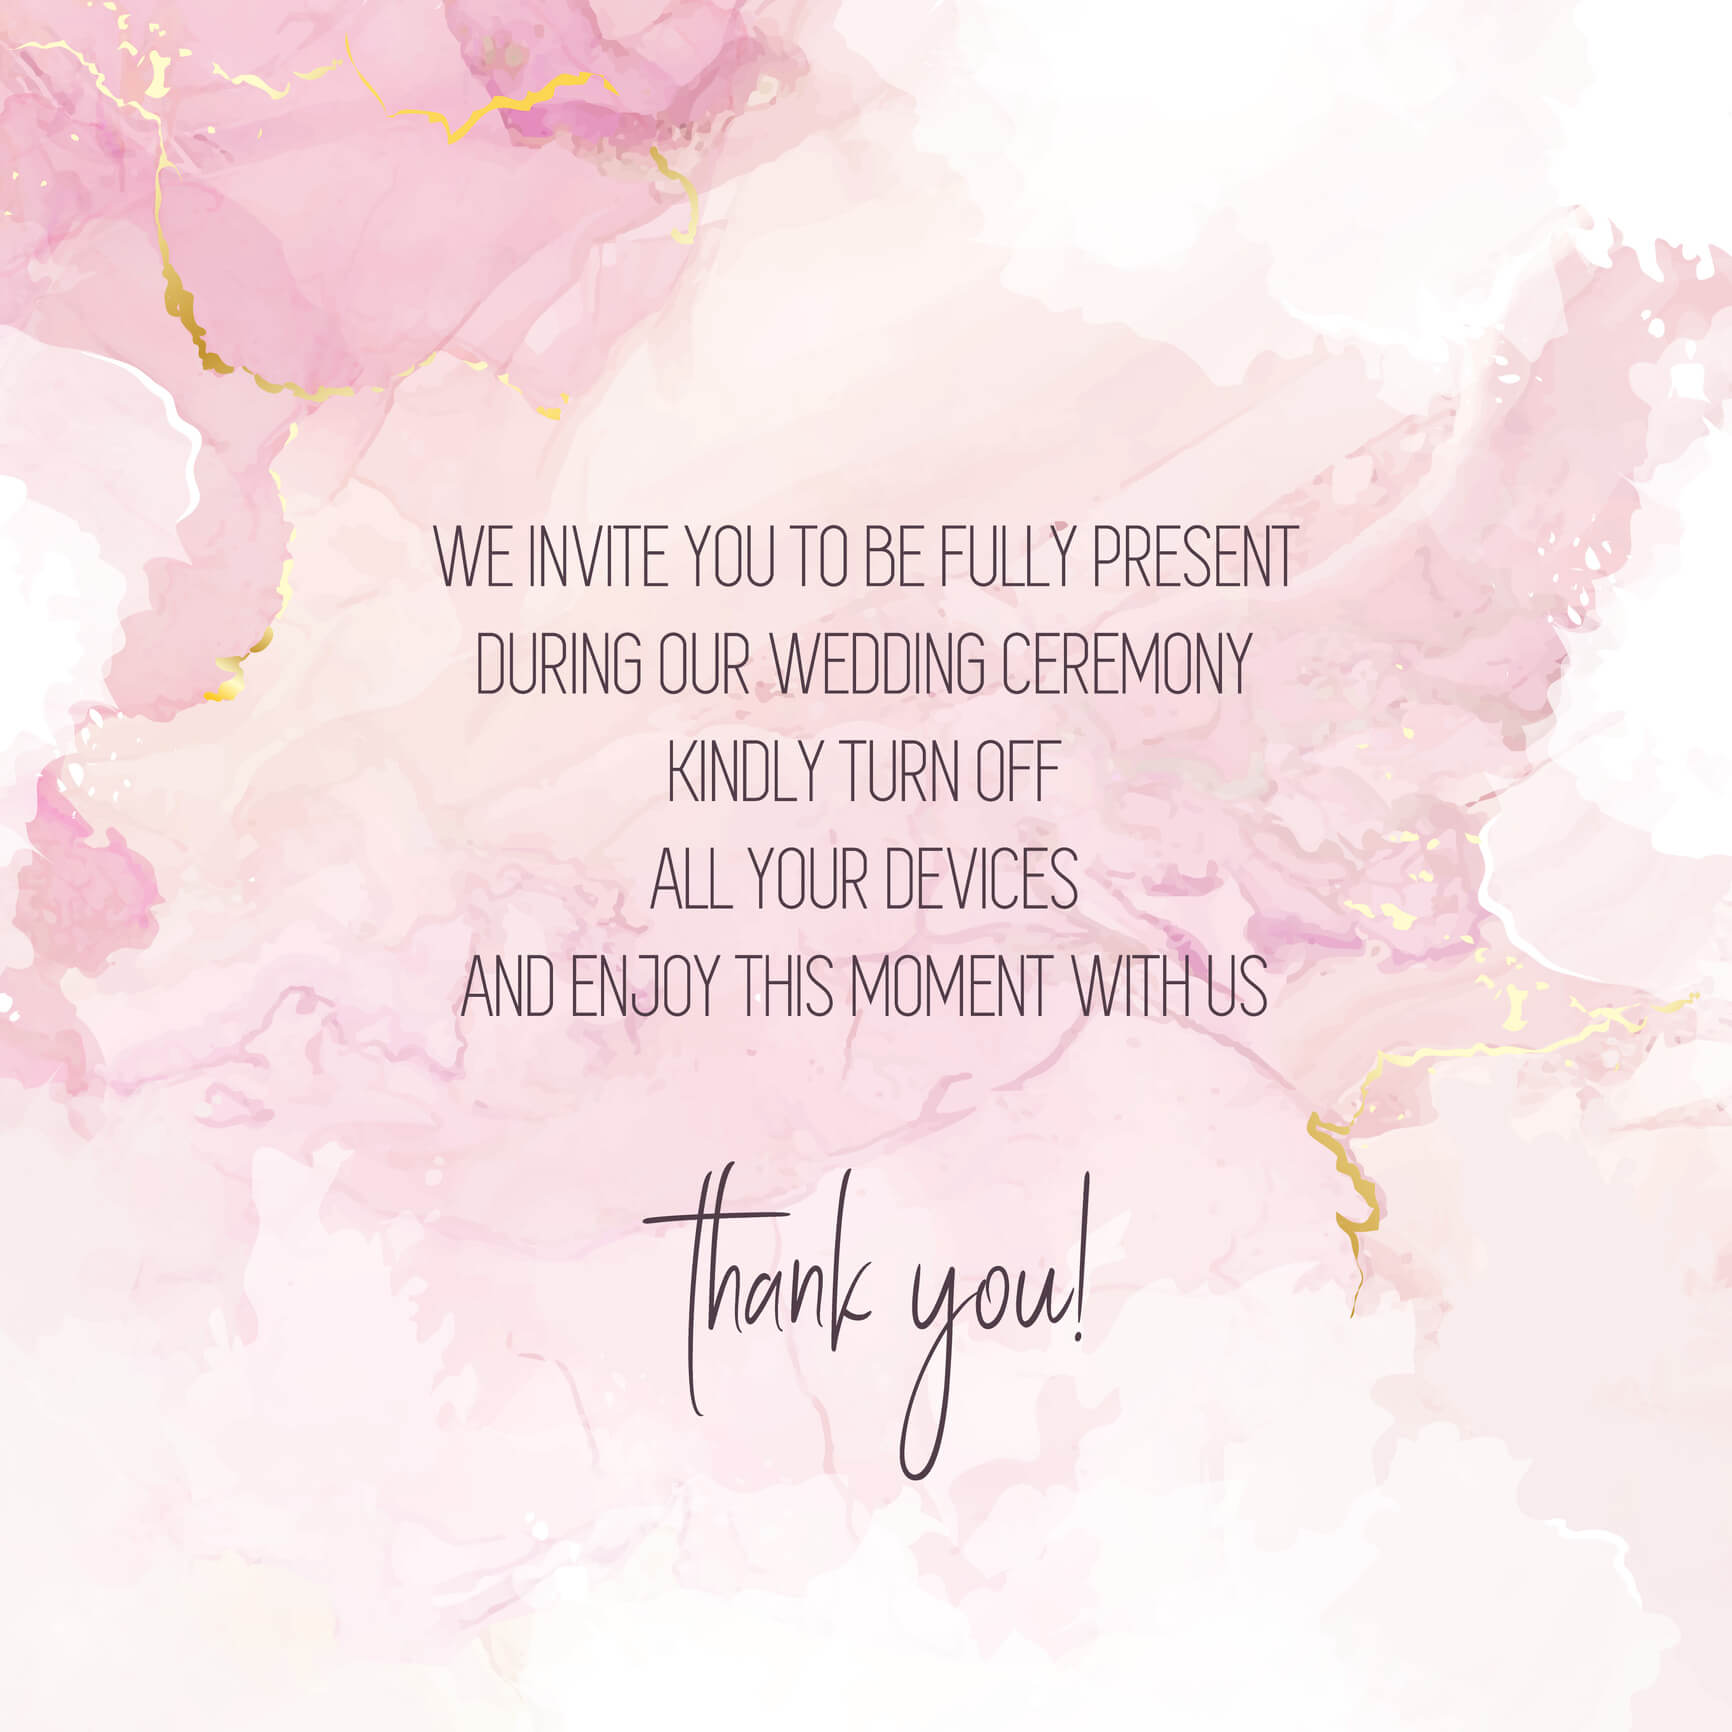 Blush pink watercolor fluid painting vector design card. Dusty rose and golden marble geode frame. Spring wedding invitation. Petal or veil texture. Dye splash style.